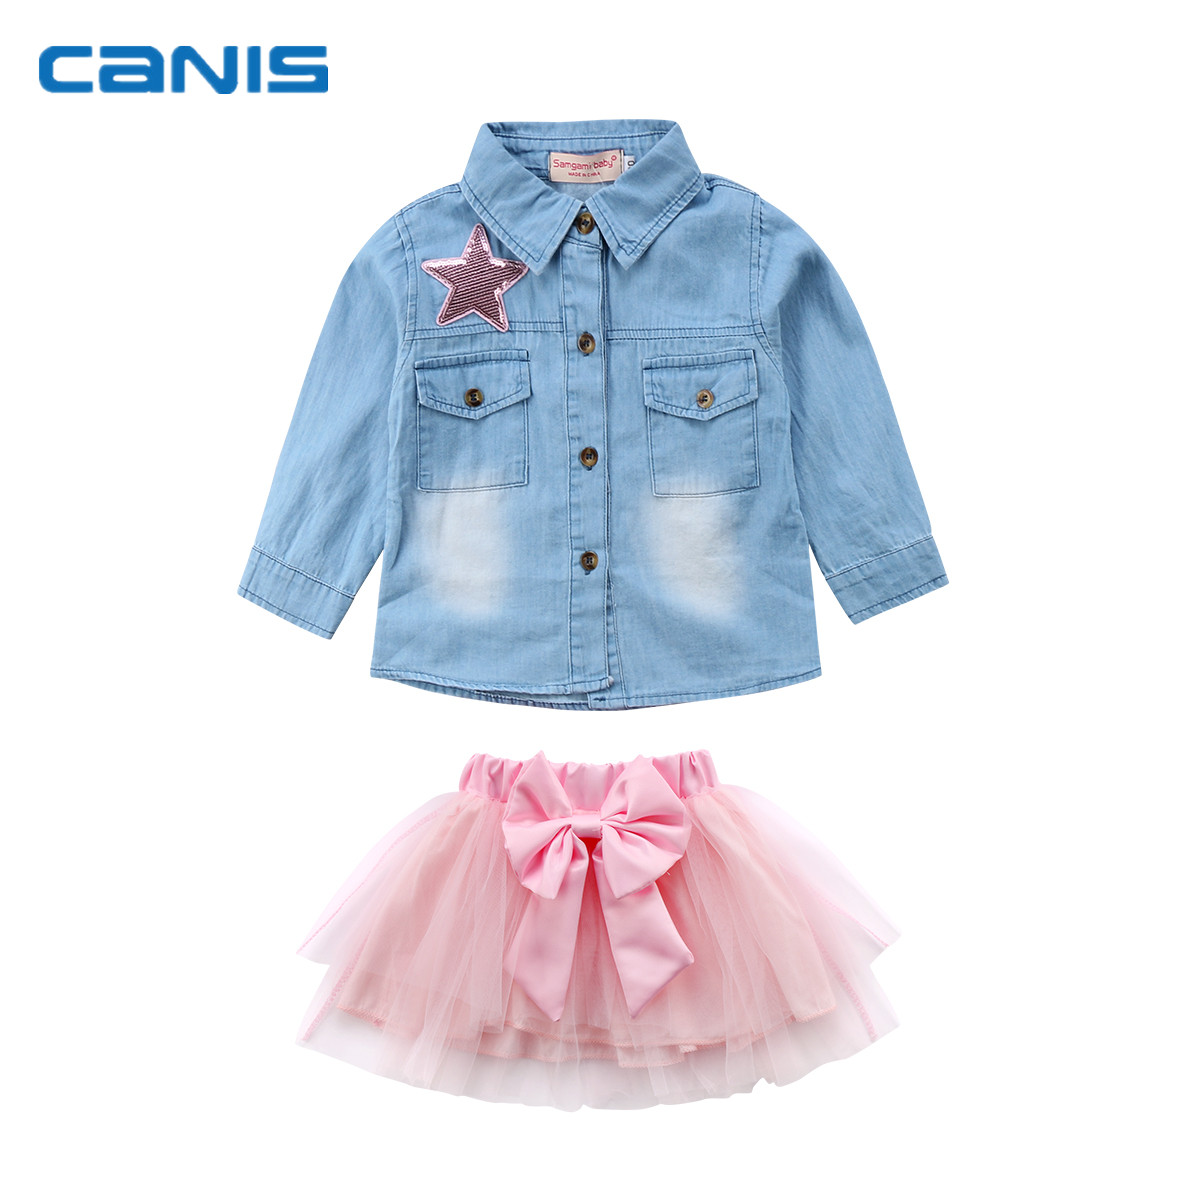 2018 Brand New Toddler Infant Child Kids Baby Girl Outfit Clothes Jeans Denim Shirt+ Bow Tutu Tulle Skirt 2Pcs Sets Clothes 1-6T 2pcs children outfit clothes kids baby girl off shoulder cotton ruffled sleeve tops striped t shirt blue denim jeans sunsuit set